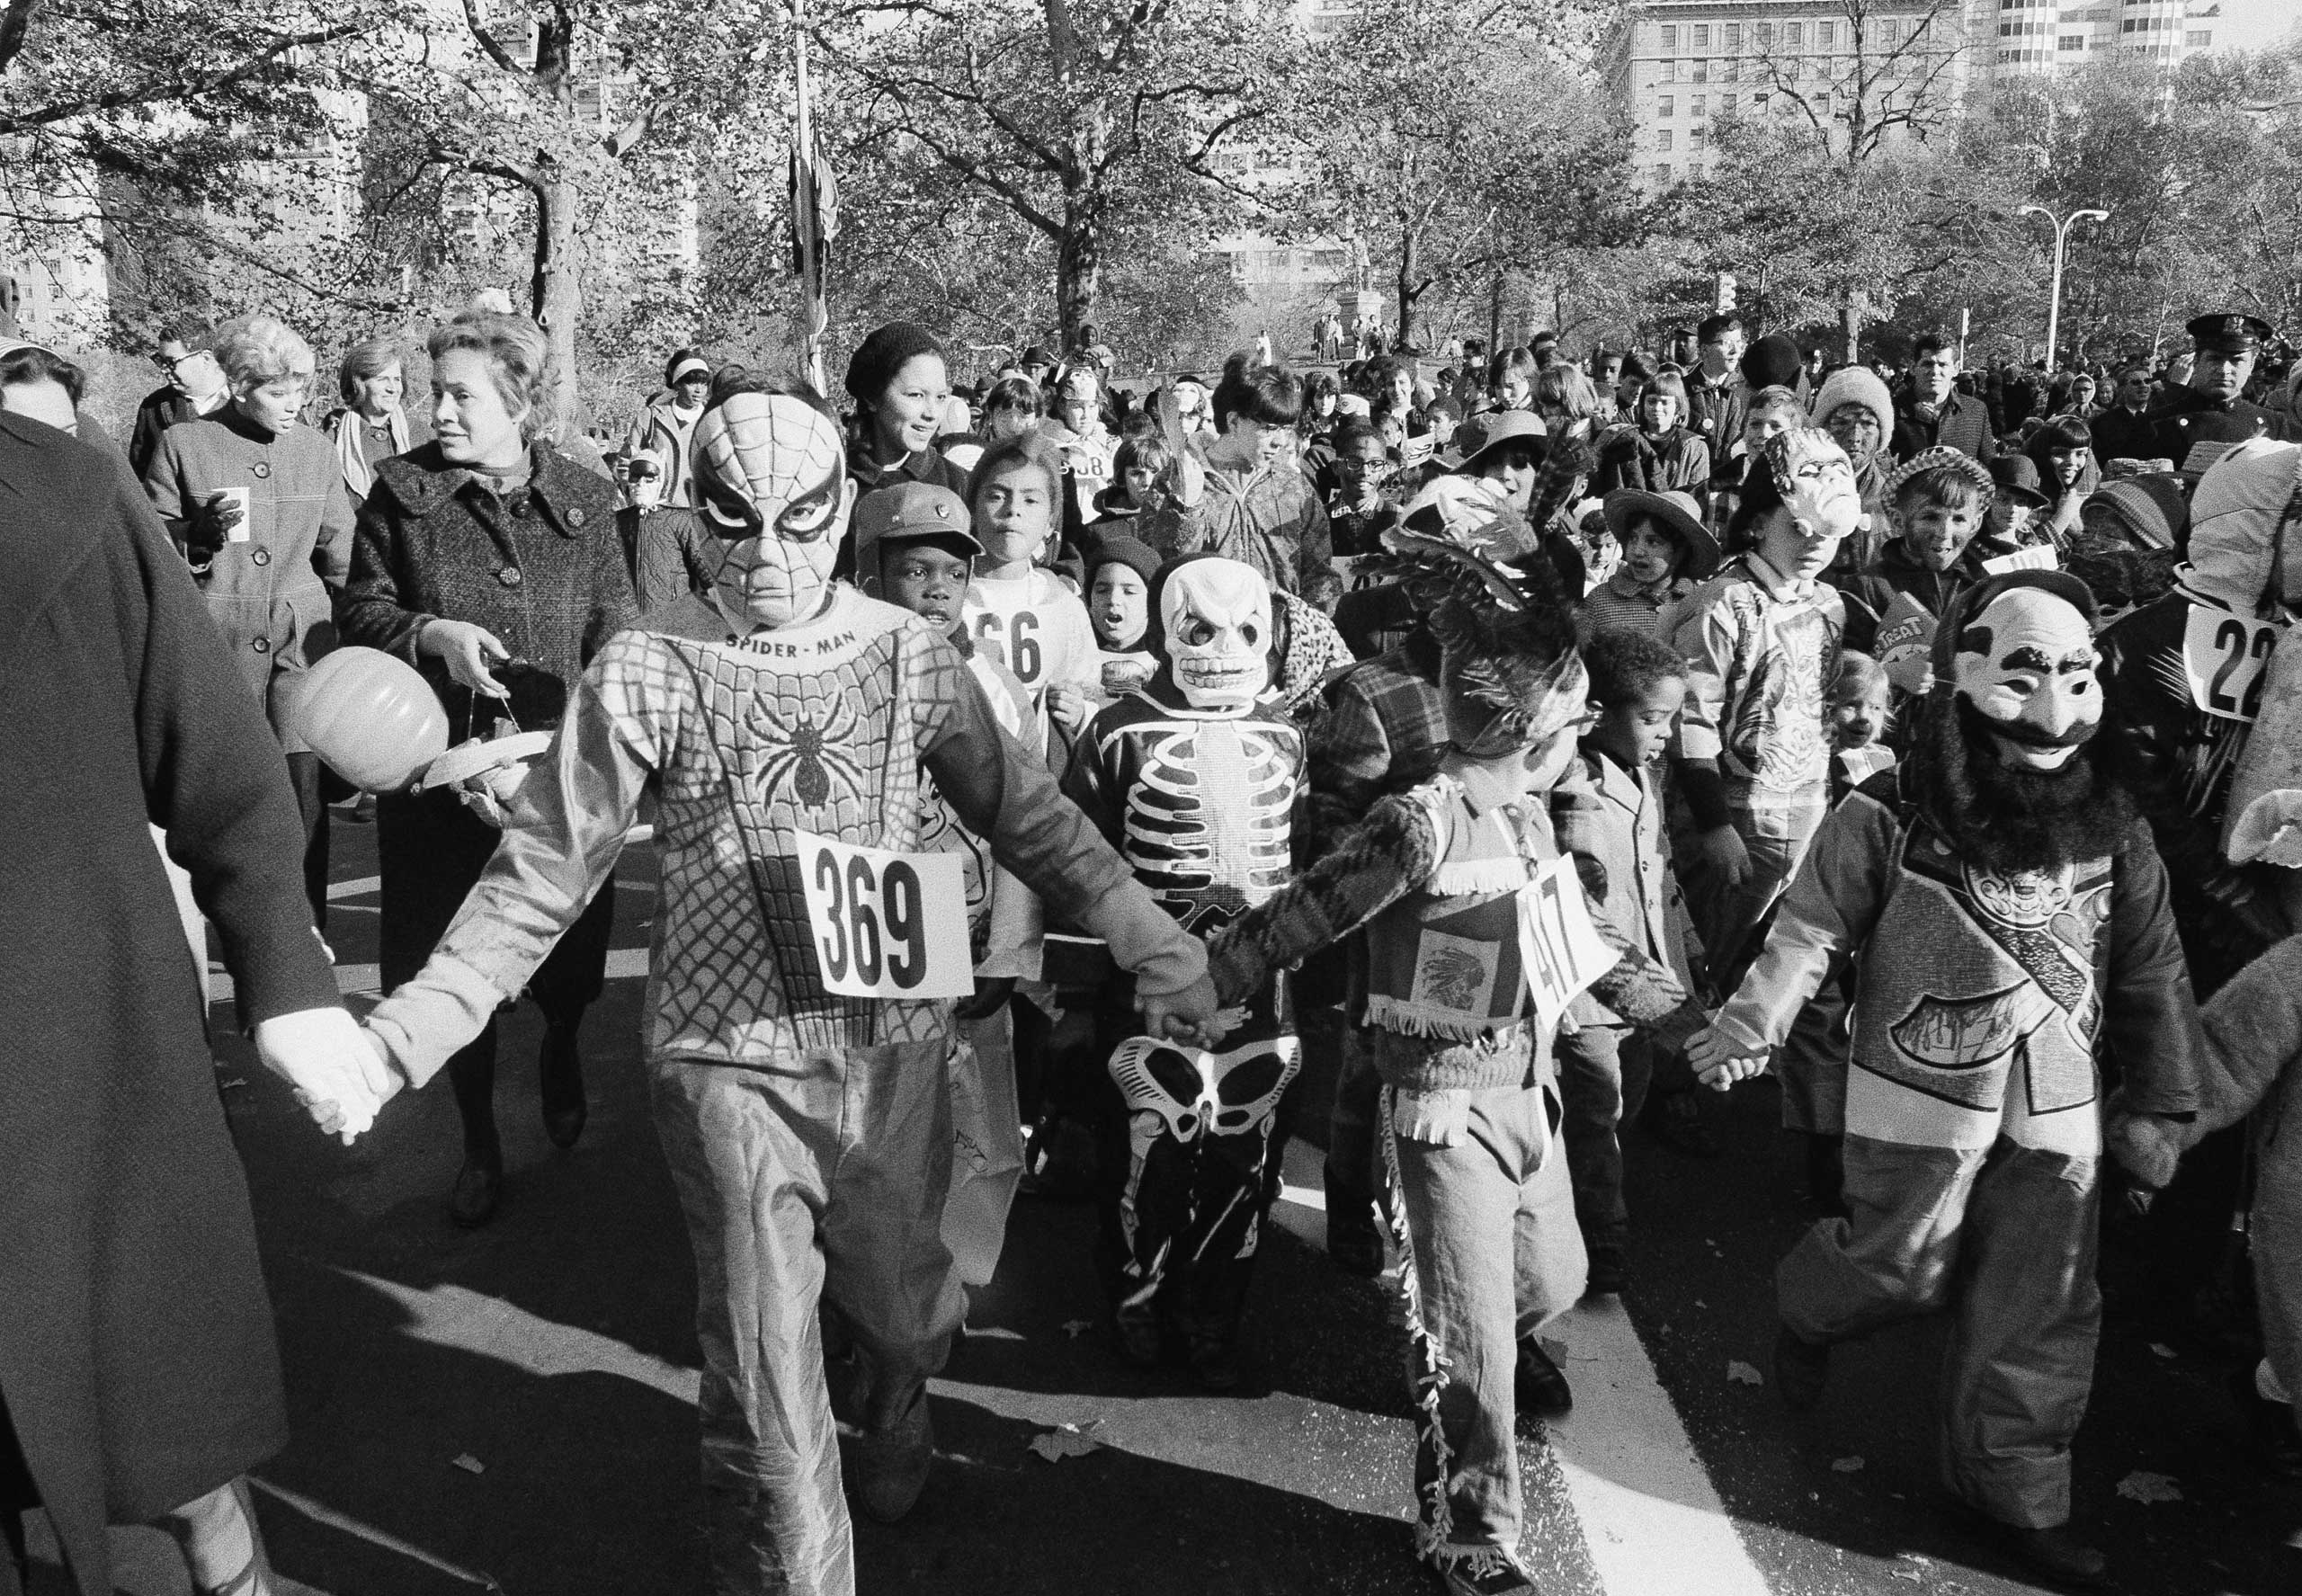 Children parade through Central Park in New York City on Oct. 30, 1966.